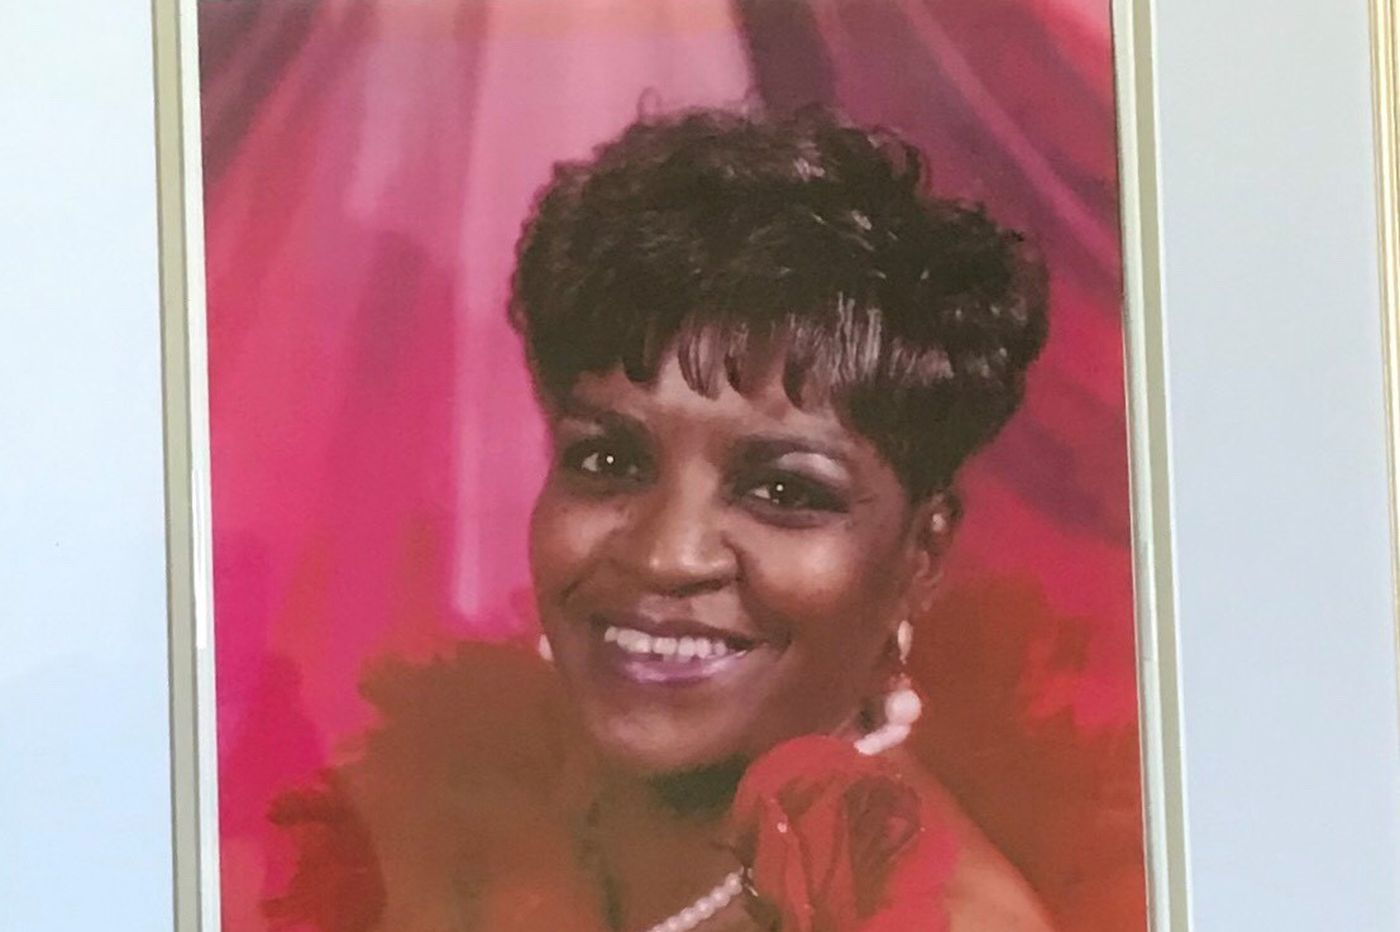 Lillian M. McCray, 73, office manager who loved to cook and help others